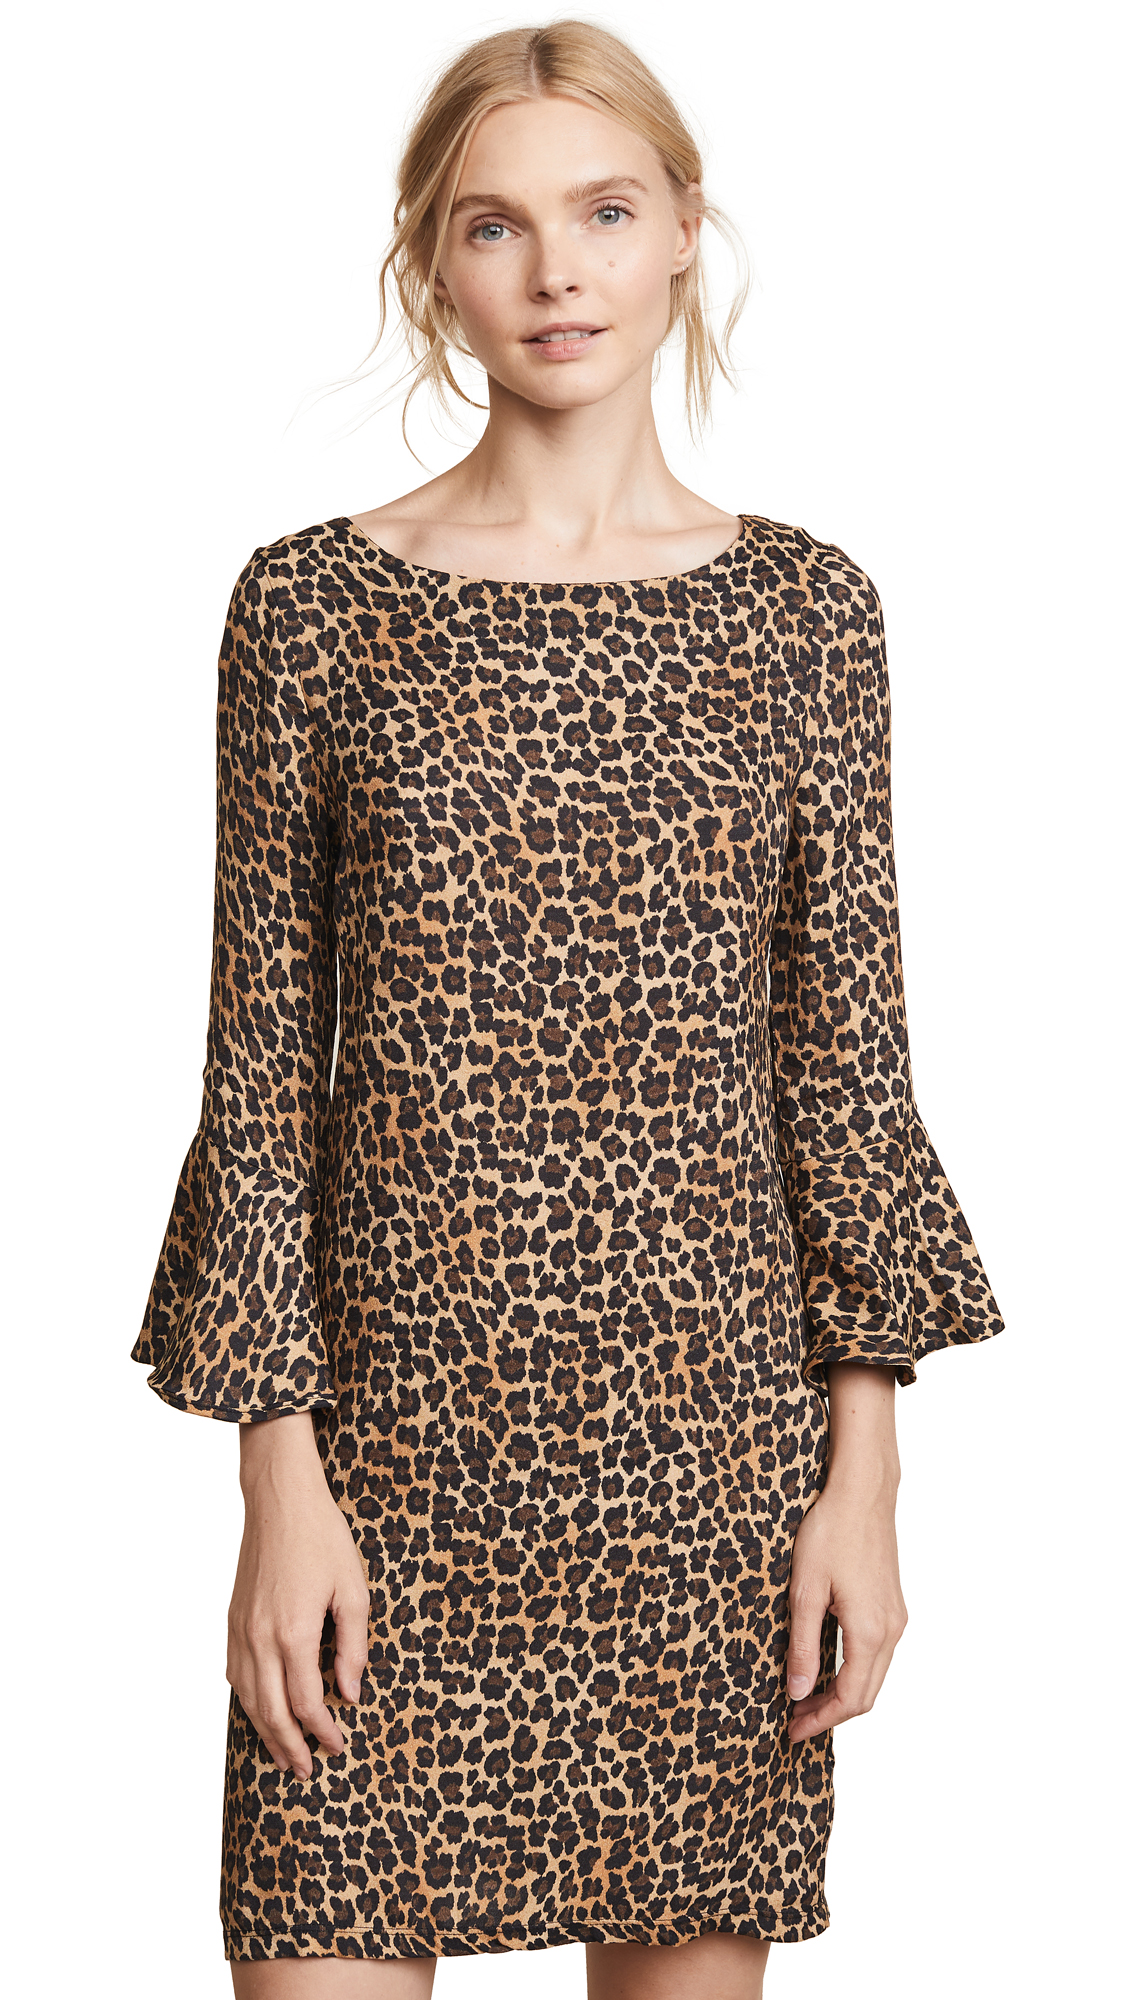 Three Dots Leopard Print Dress - Black/Camel